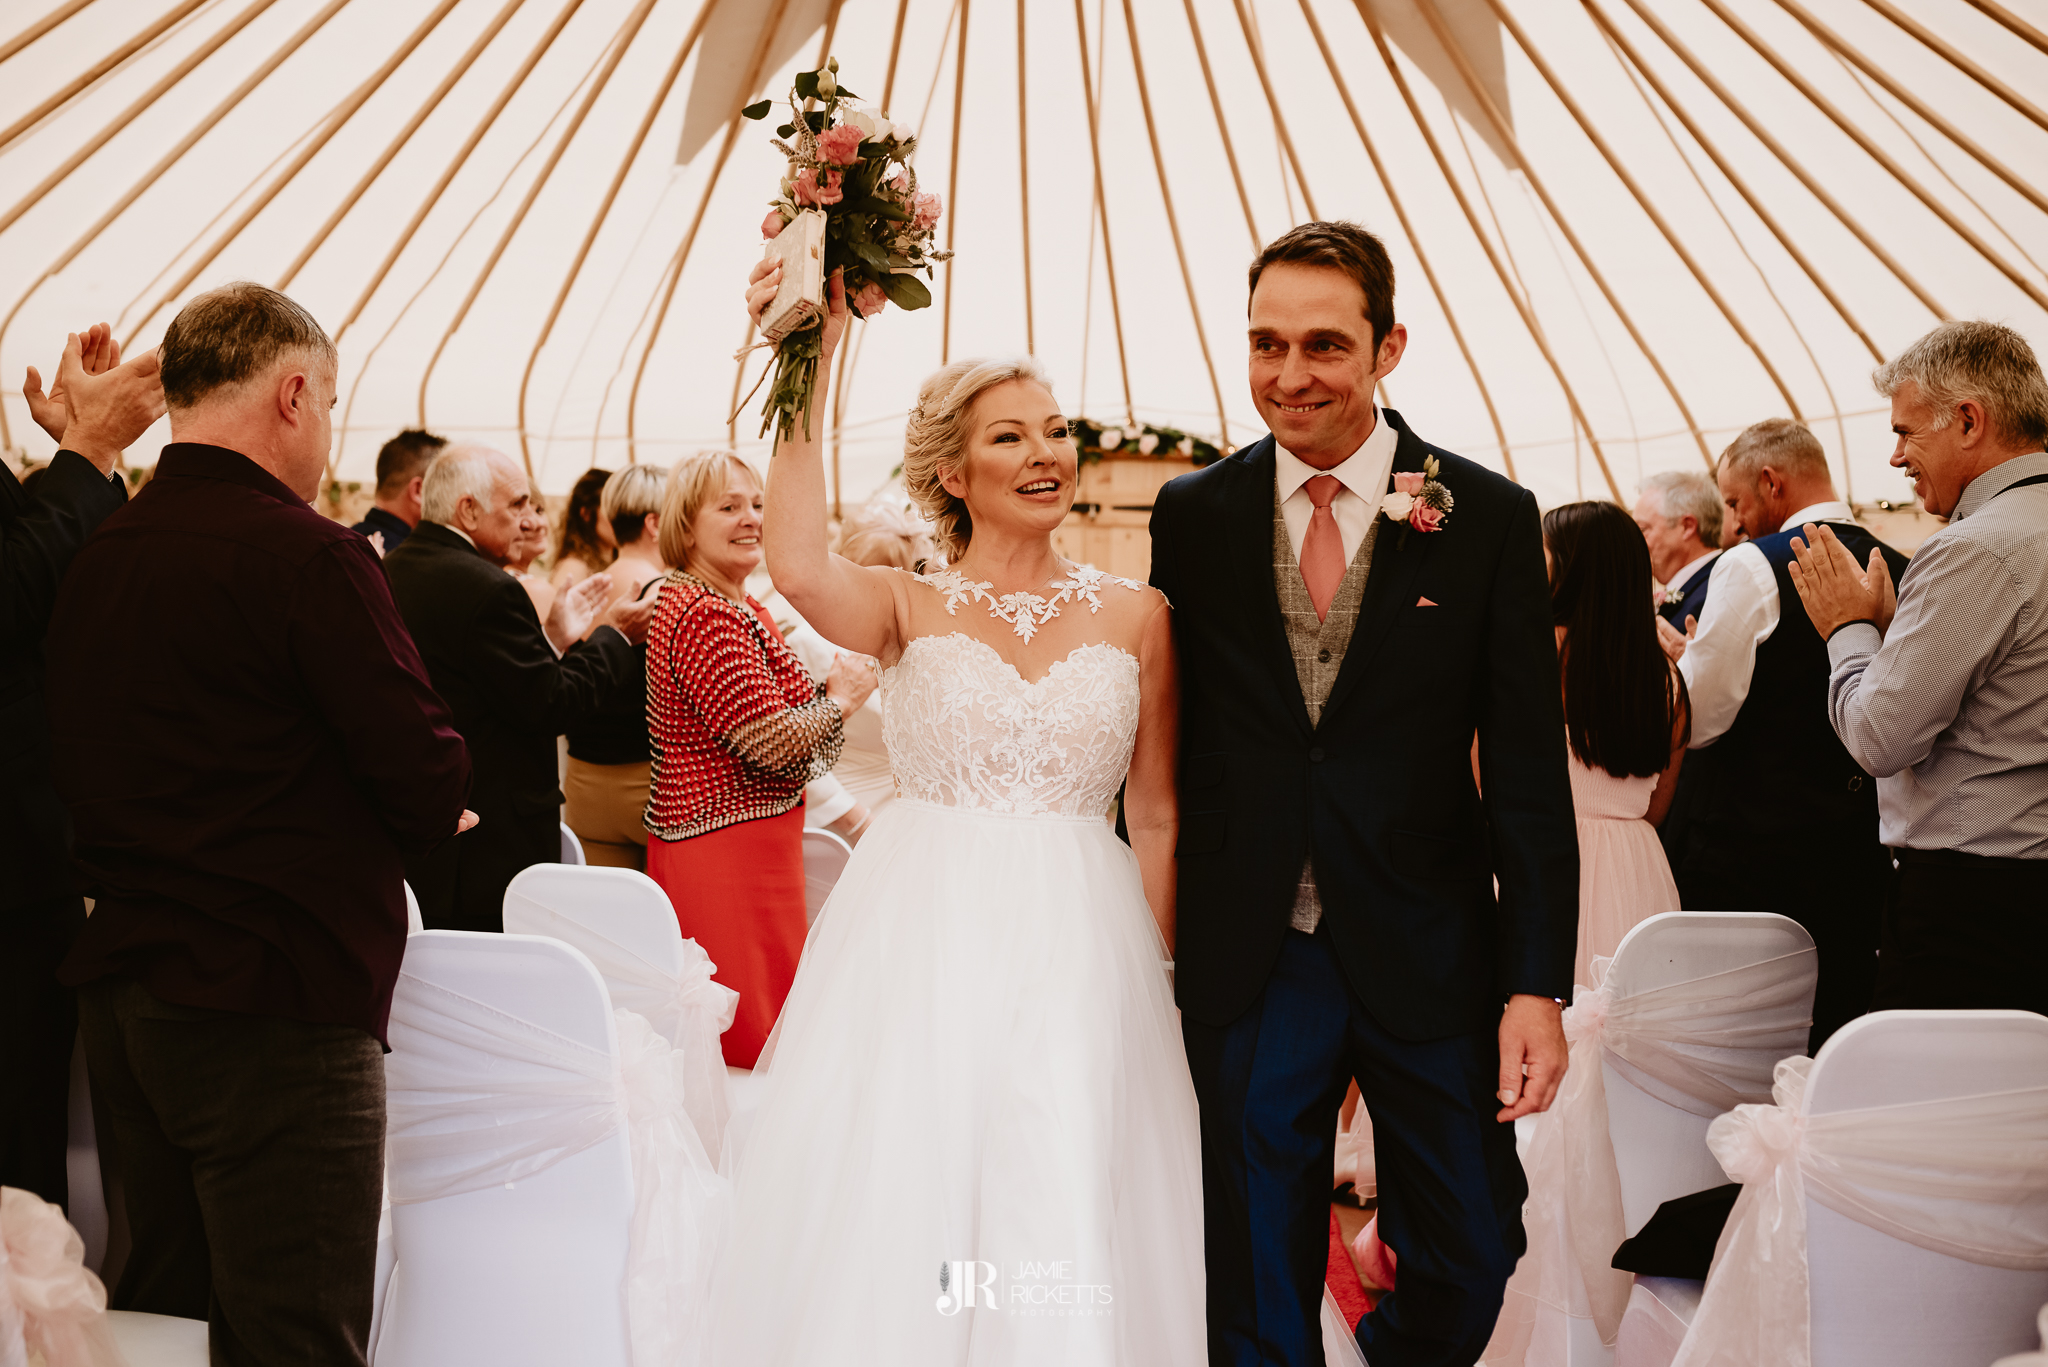 Wroxeter-Hotel-Wedding-Photography-In-Shropshire-By-Shropshire-Wedding-Photographer-Jamie-Ricketts-077.JPG